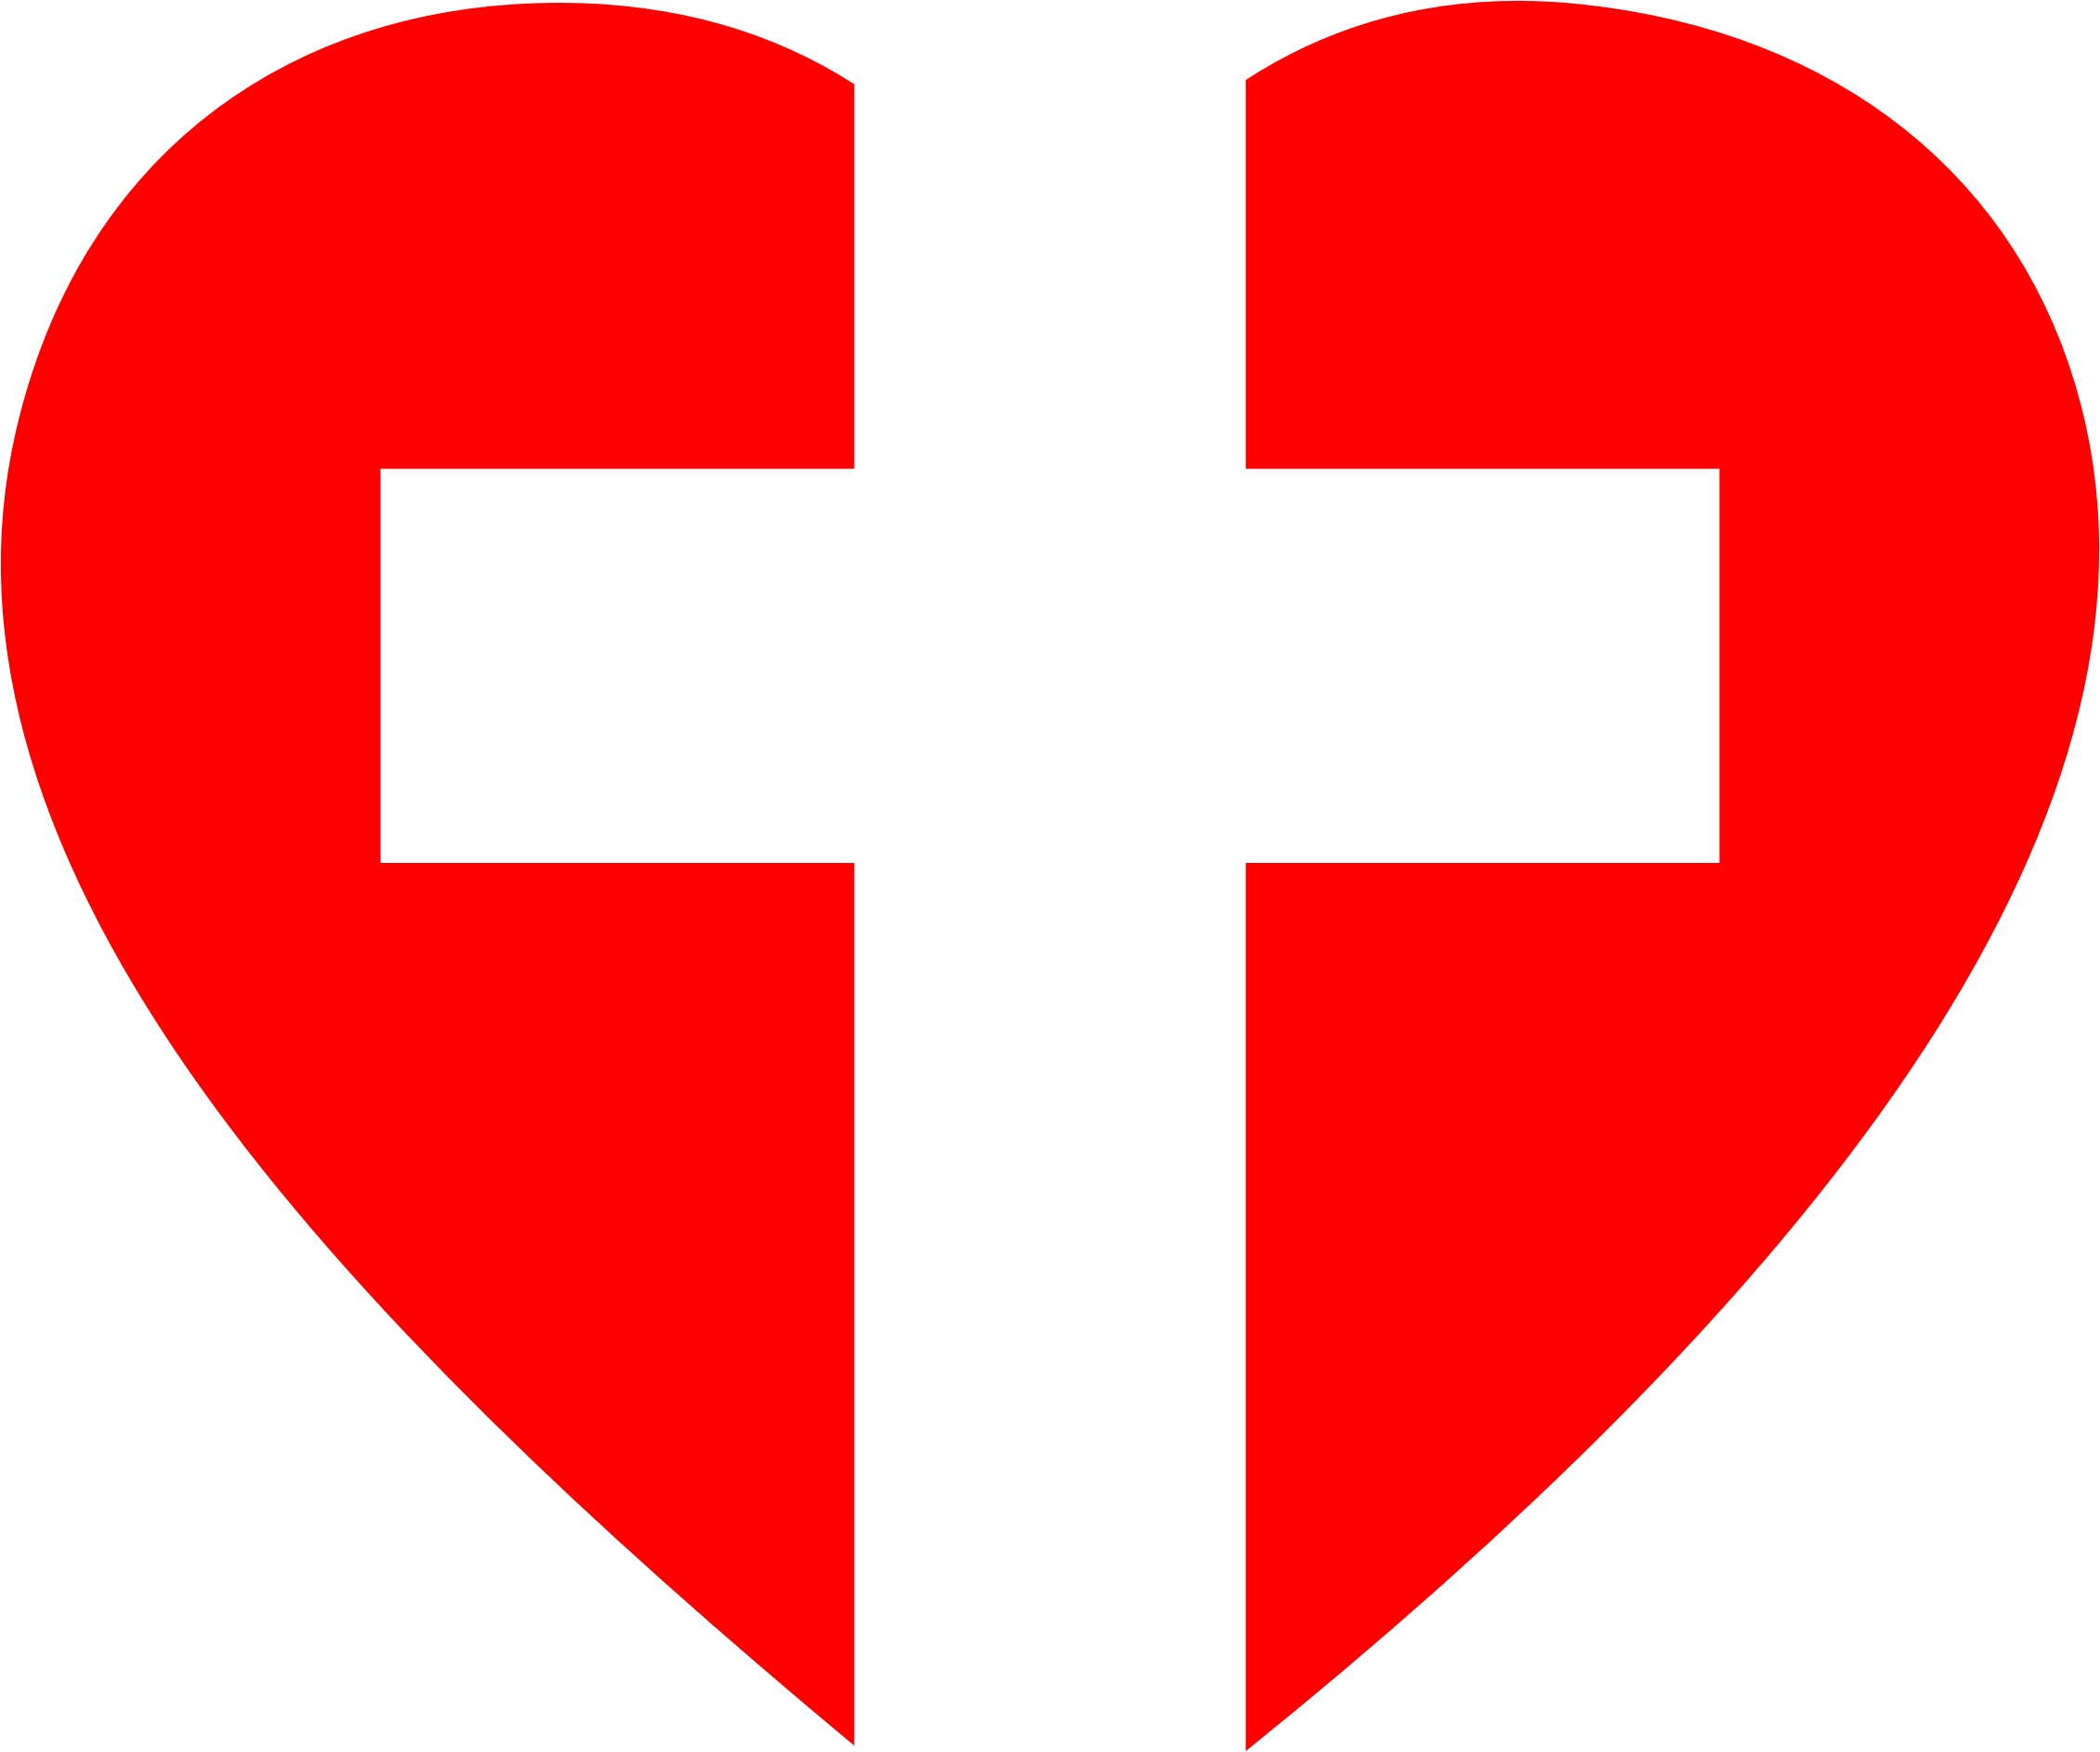 2260x1886 Heart Cross Icons Png